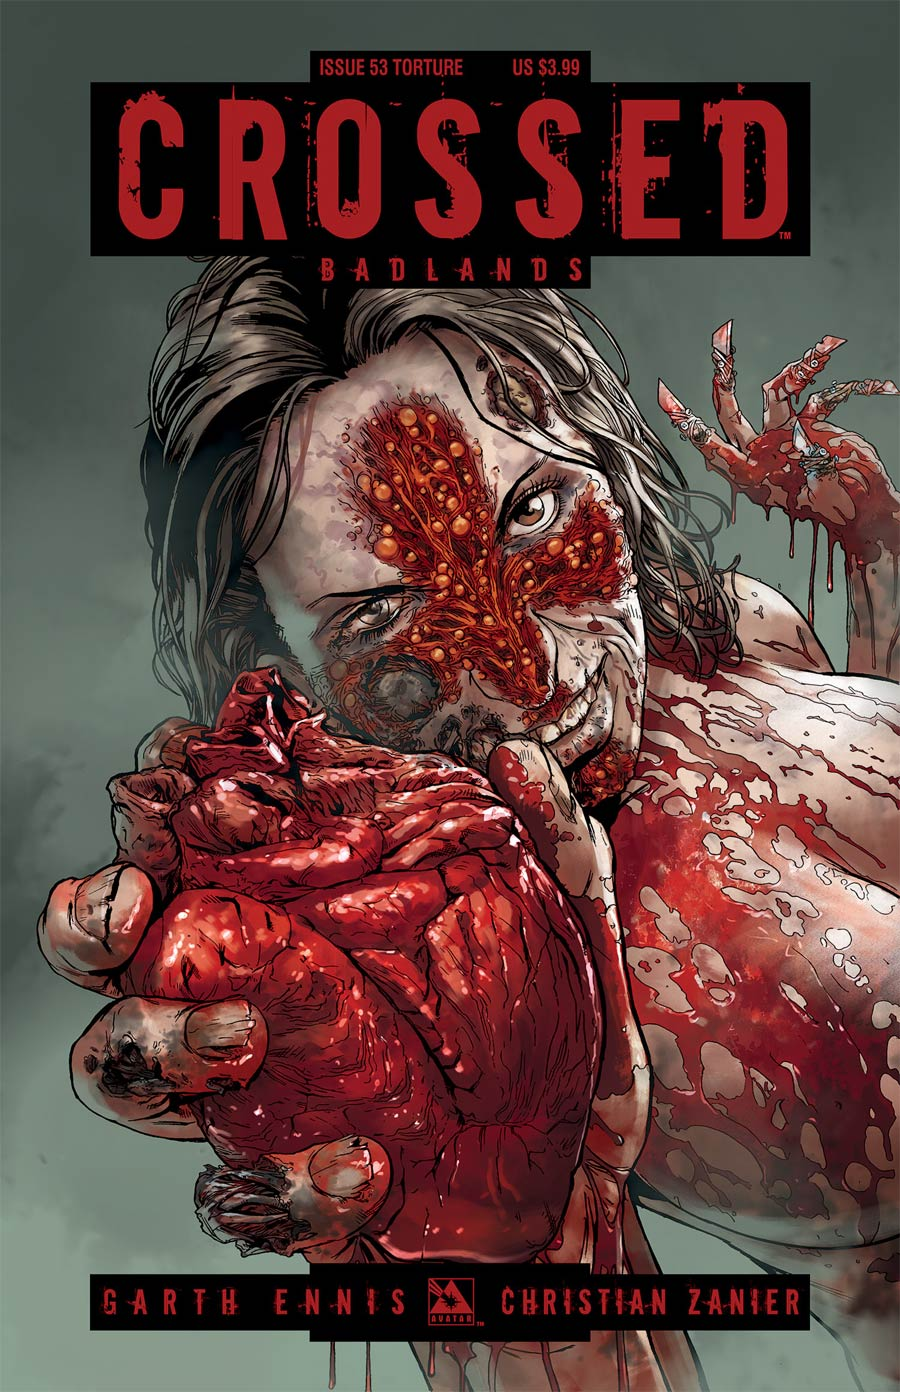 Crossed Badlands #53 Cover C Torture Cover